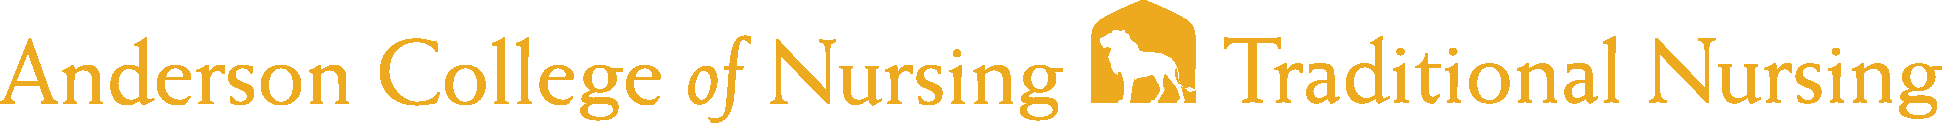 Anderson College of Nursing Traditional Logo - Gold - Version 2